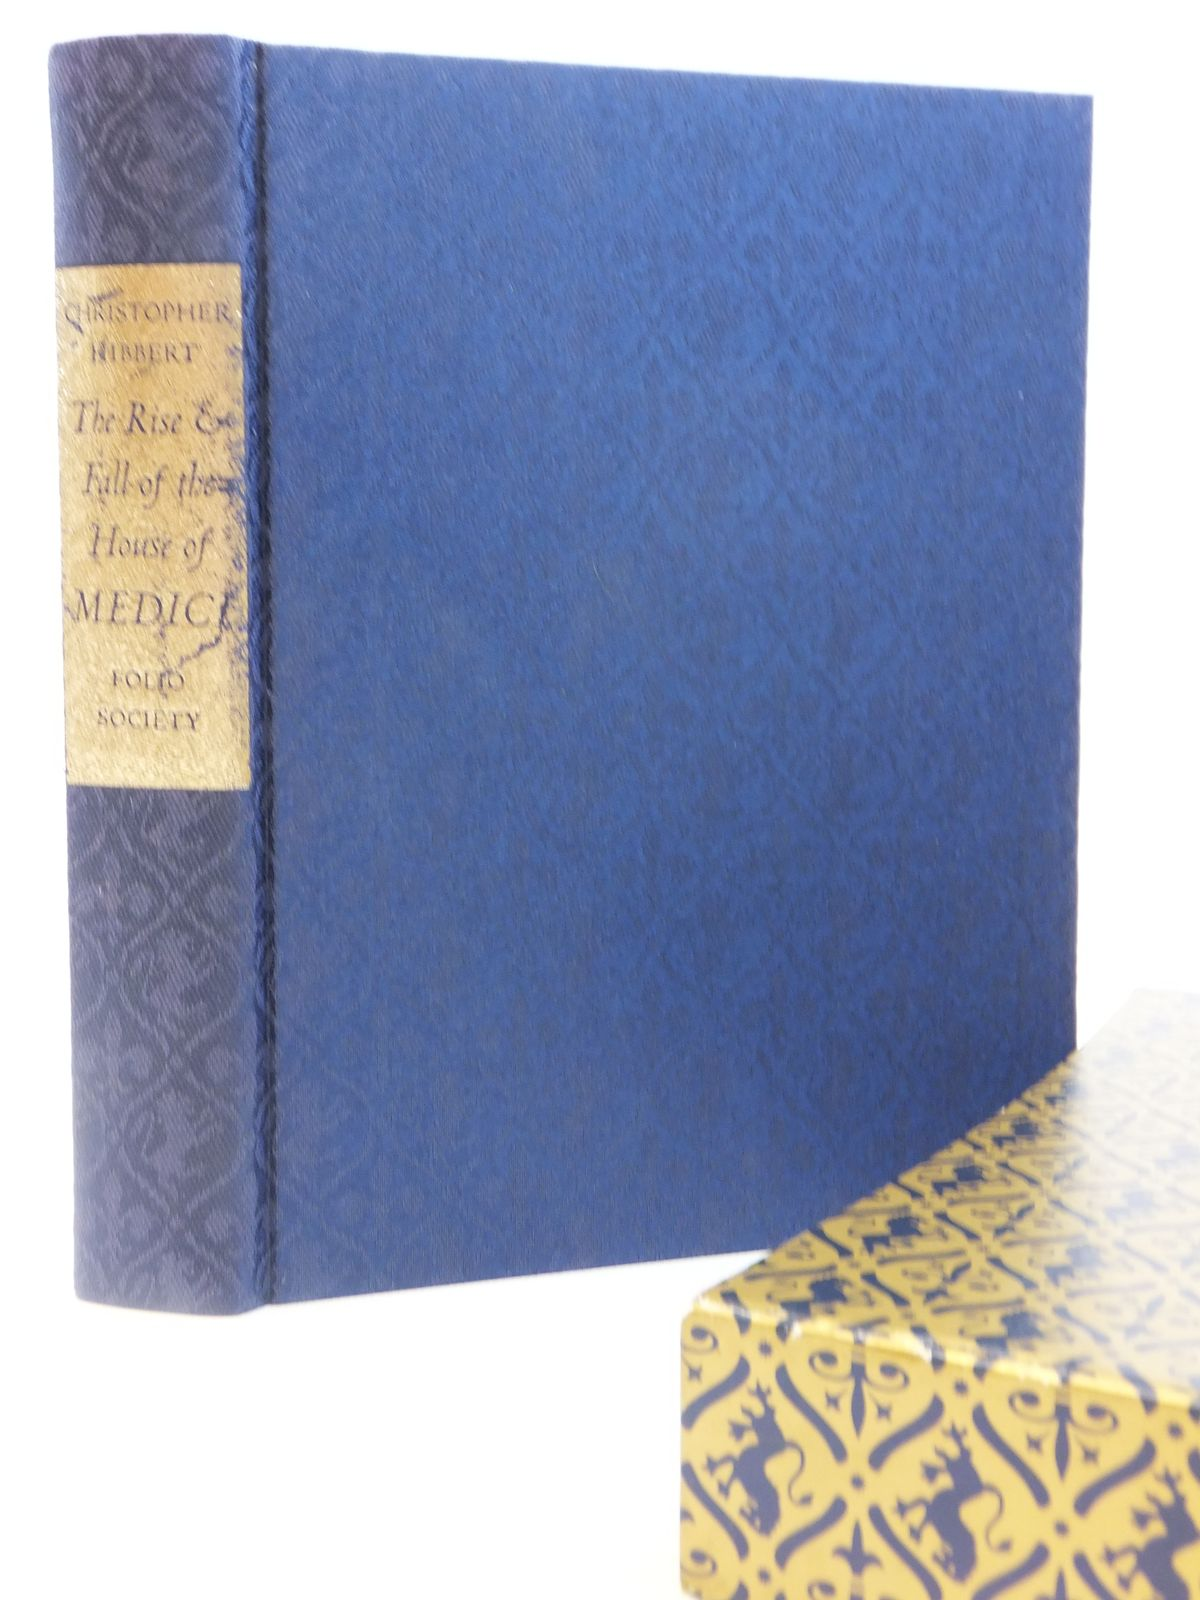 Photo of THE RISE AND FALL OF THE HOUSE OF MEDICI written by Hibbert, Christopher<br />Acton, Harold published by Folio Society (STOCK CODE: 1608350)  for sale by Stella & Rose's Books